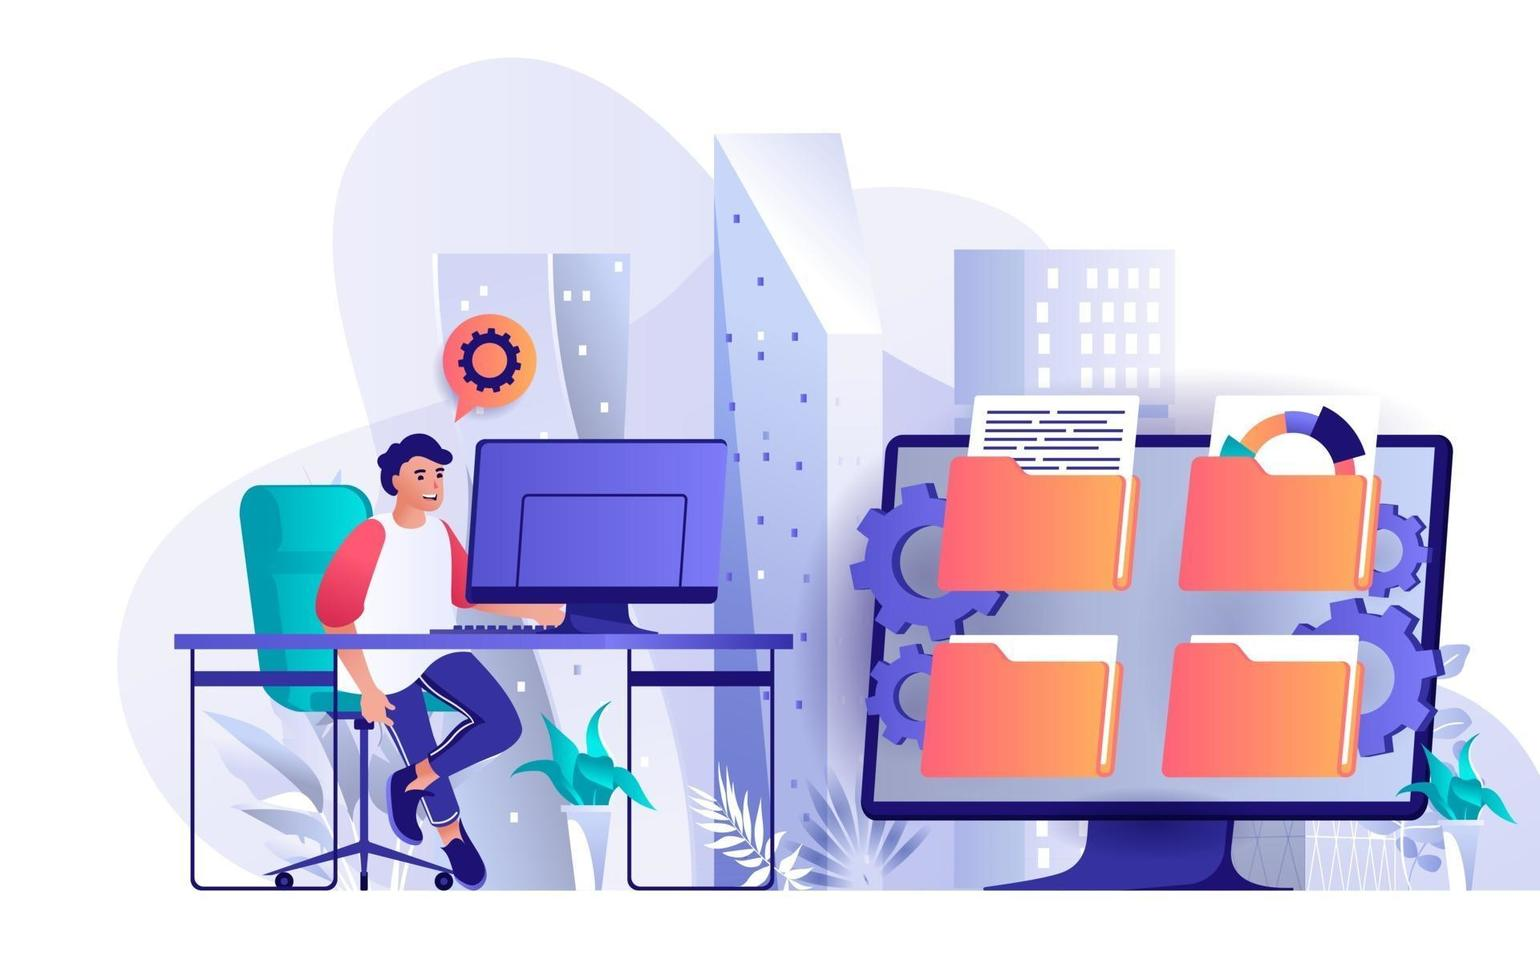 Cyberspace management concept in flat design vector